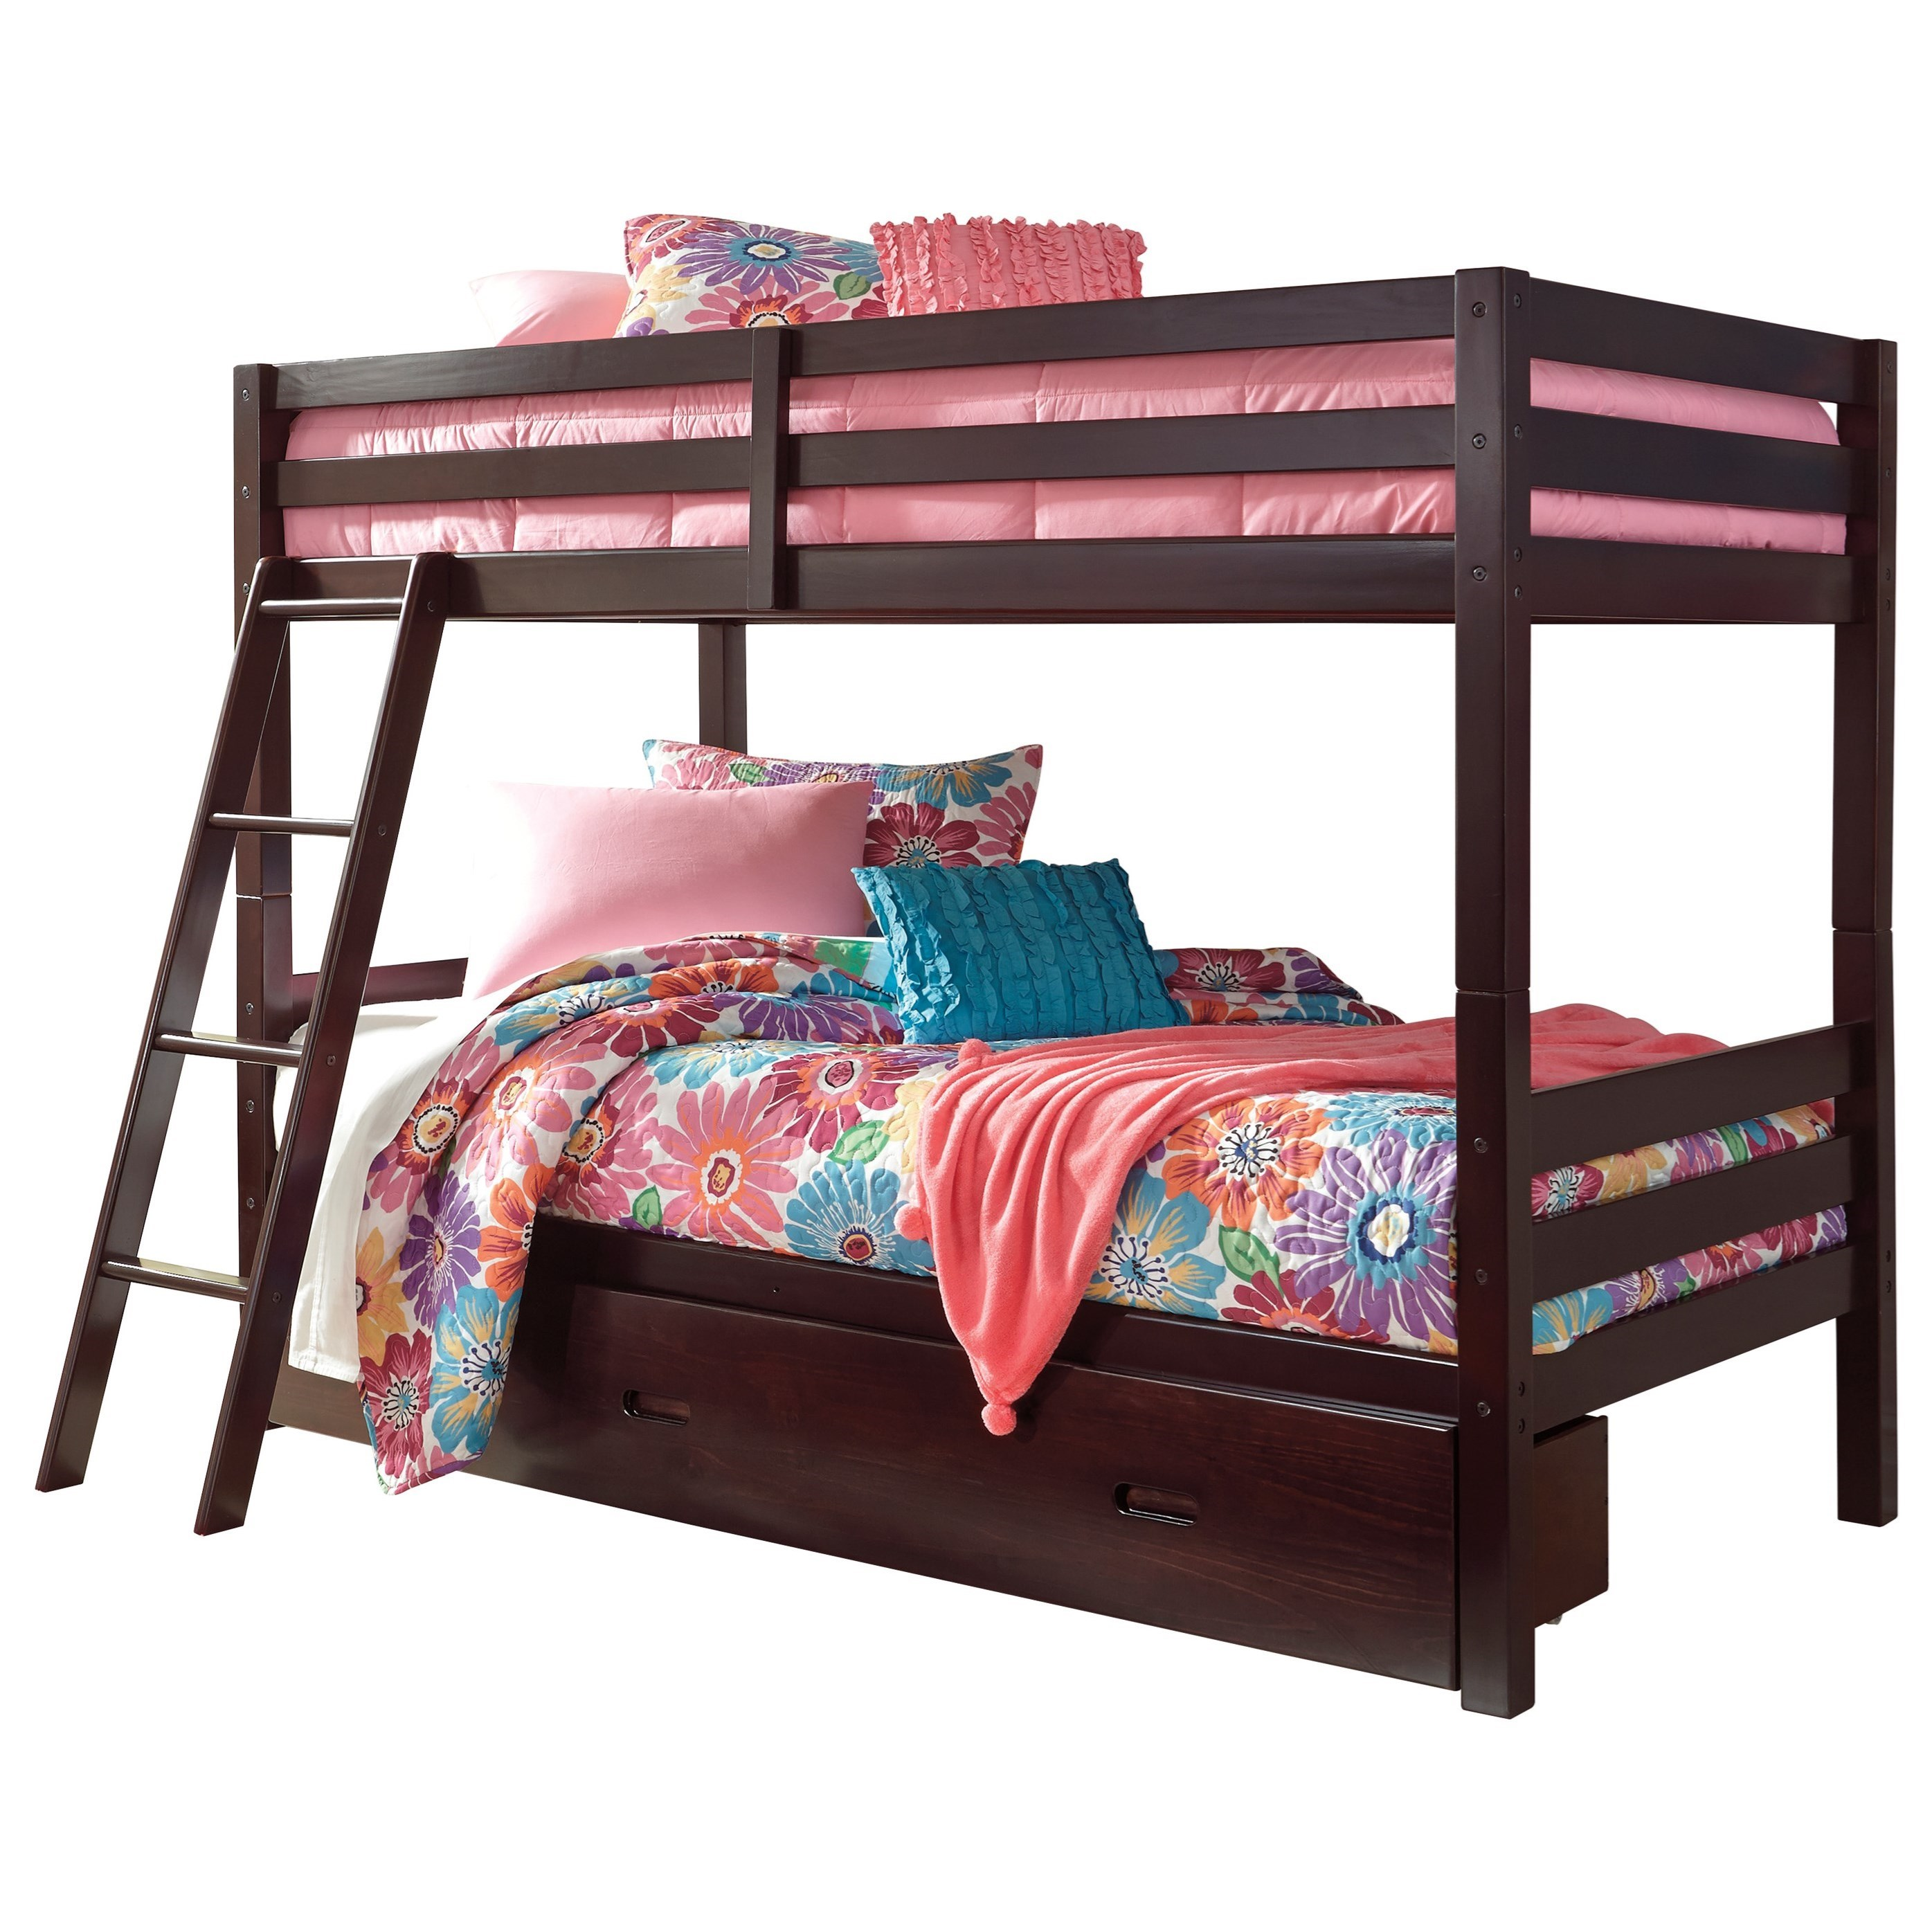 Halanton Twin/Twin Bunk Bed w/ Under Bed Storage by Ashley (Signature Design) at Johnny Janosik